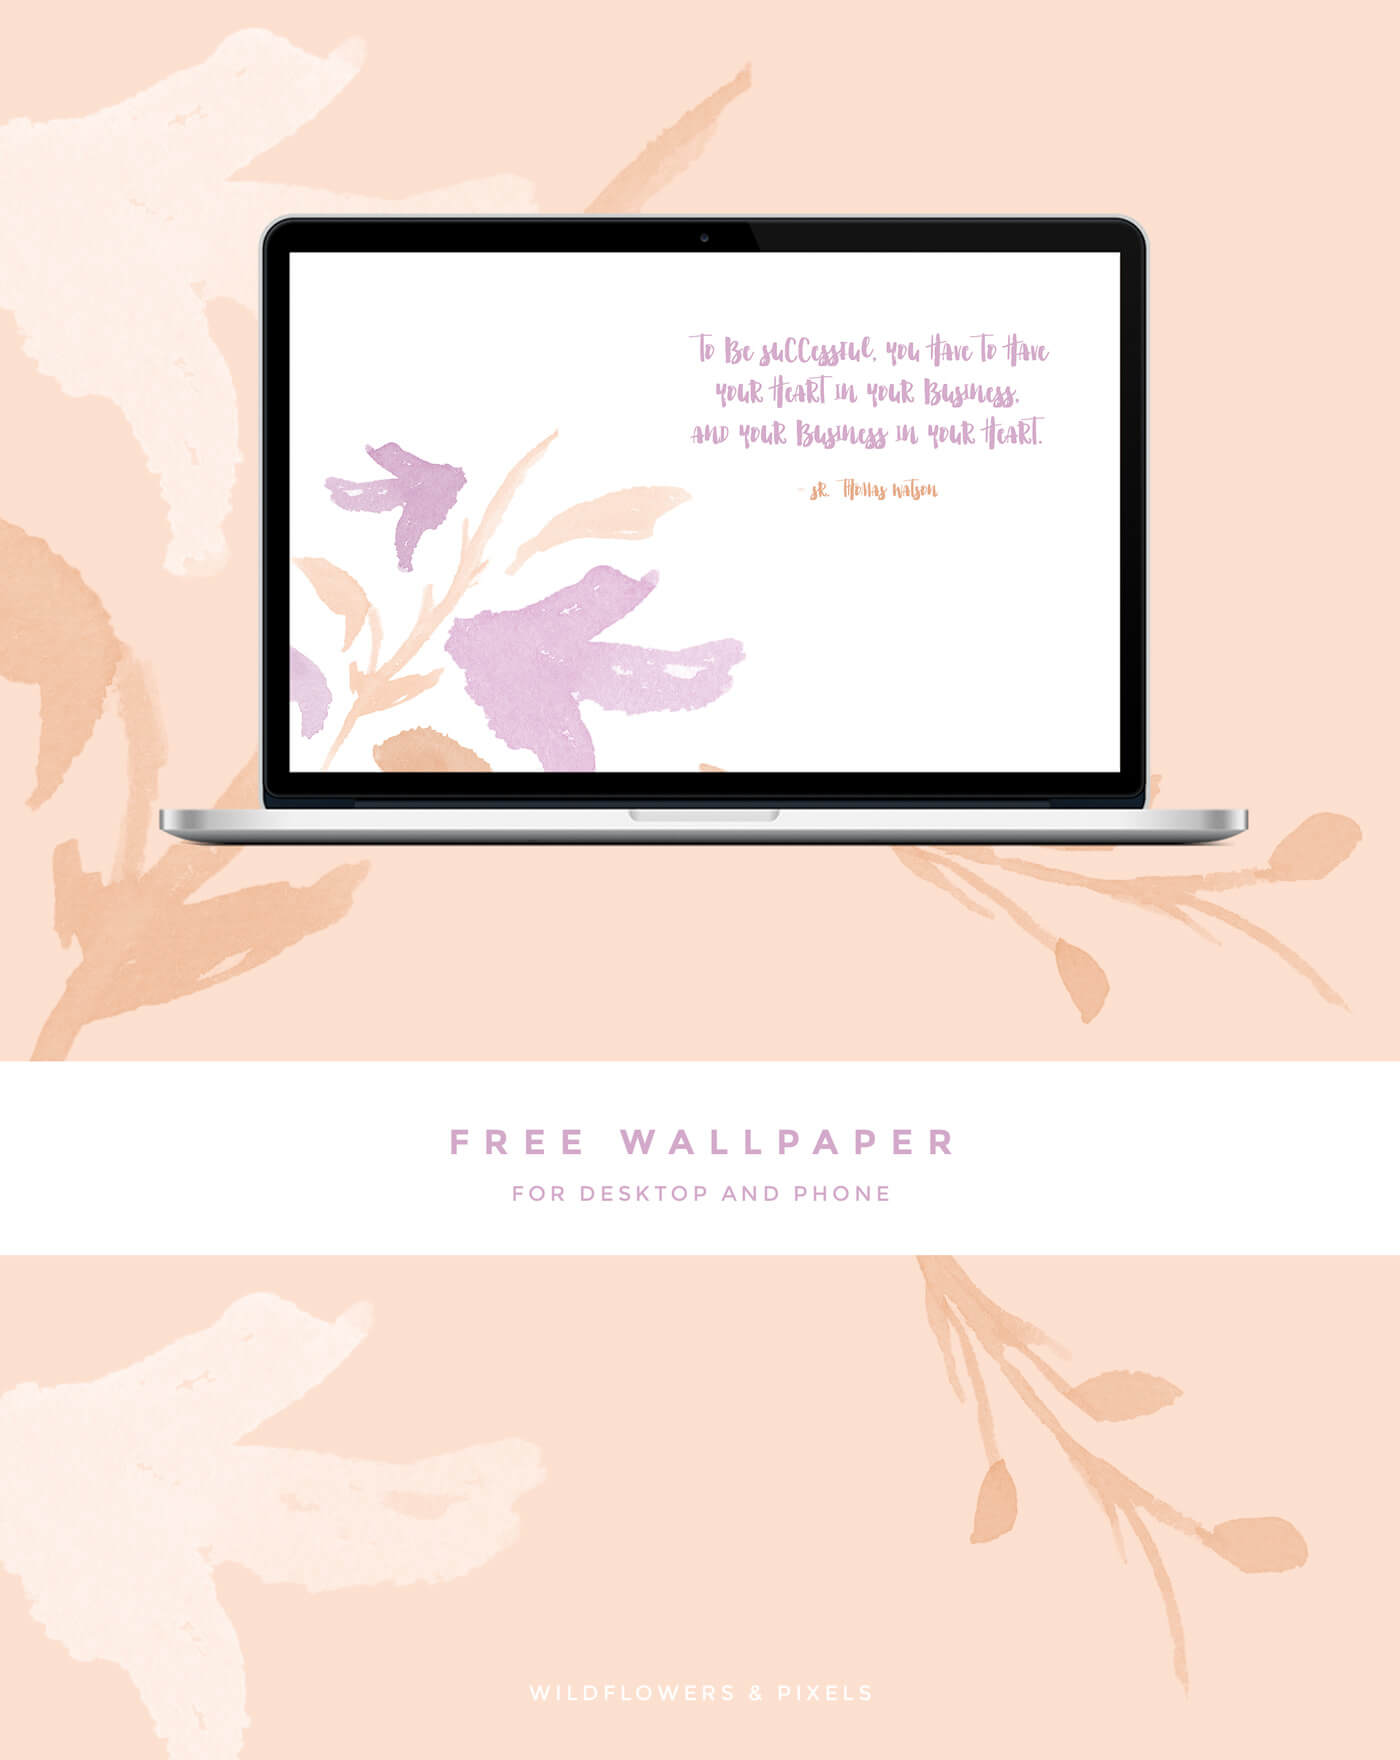 """""""To be successful, you have to have your heart in your business, and your business in your heart."""" – Sr. Thomas Watson - A pretty watercolour free wallpaper theme this time with a strong motivational quote about business success and loving what you do."""